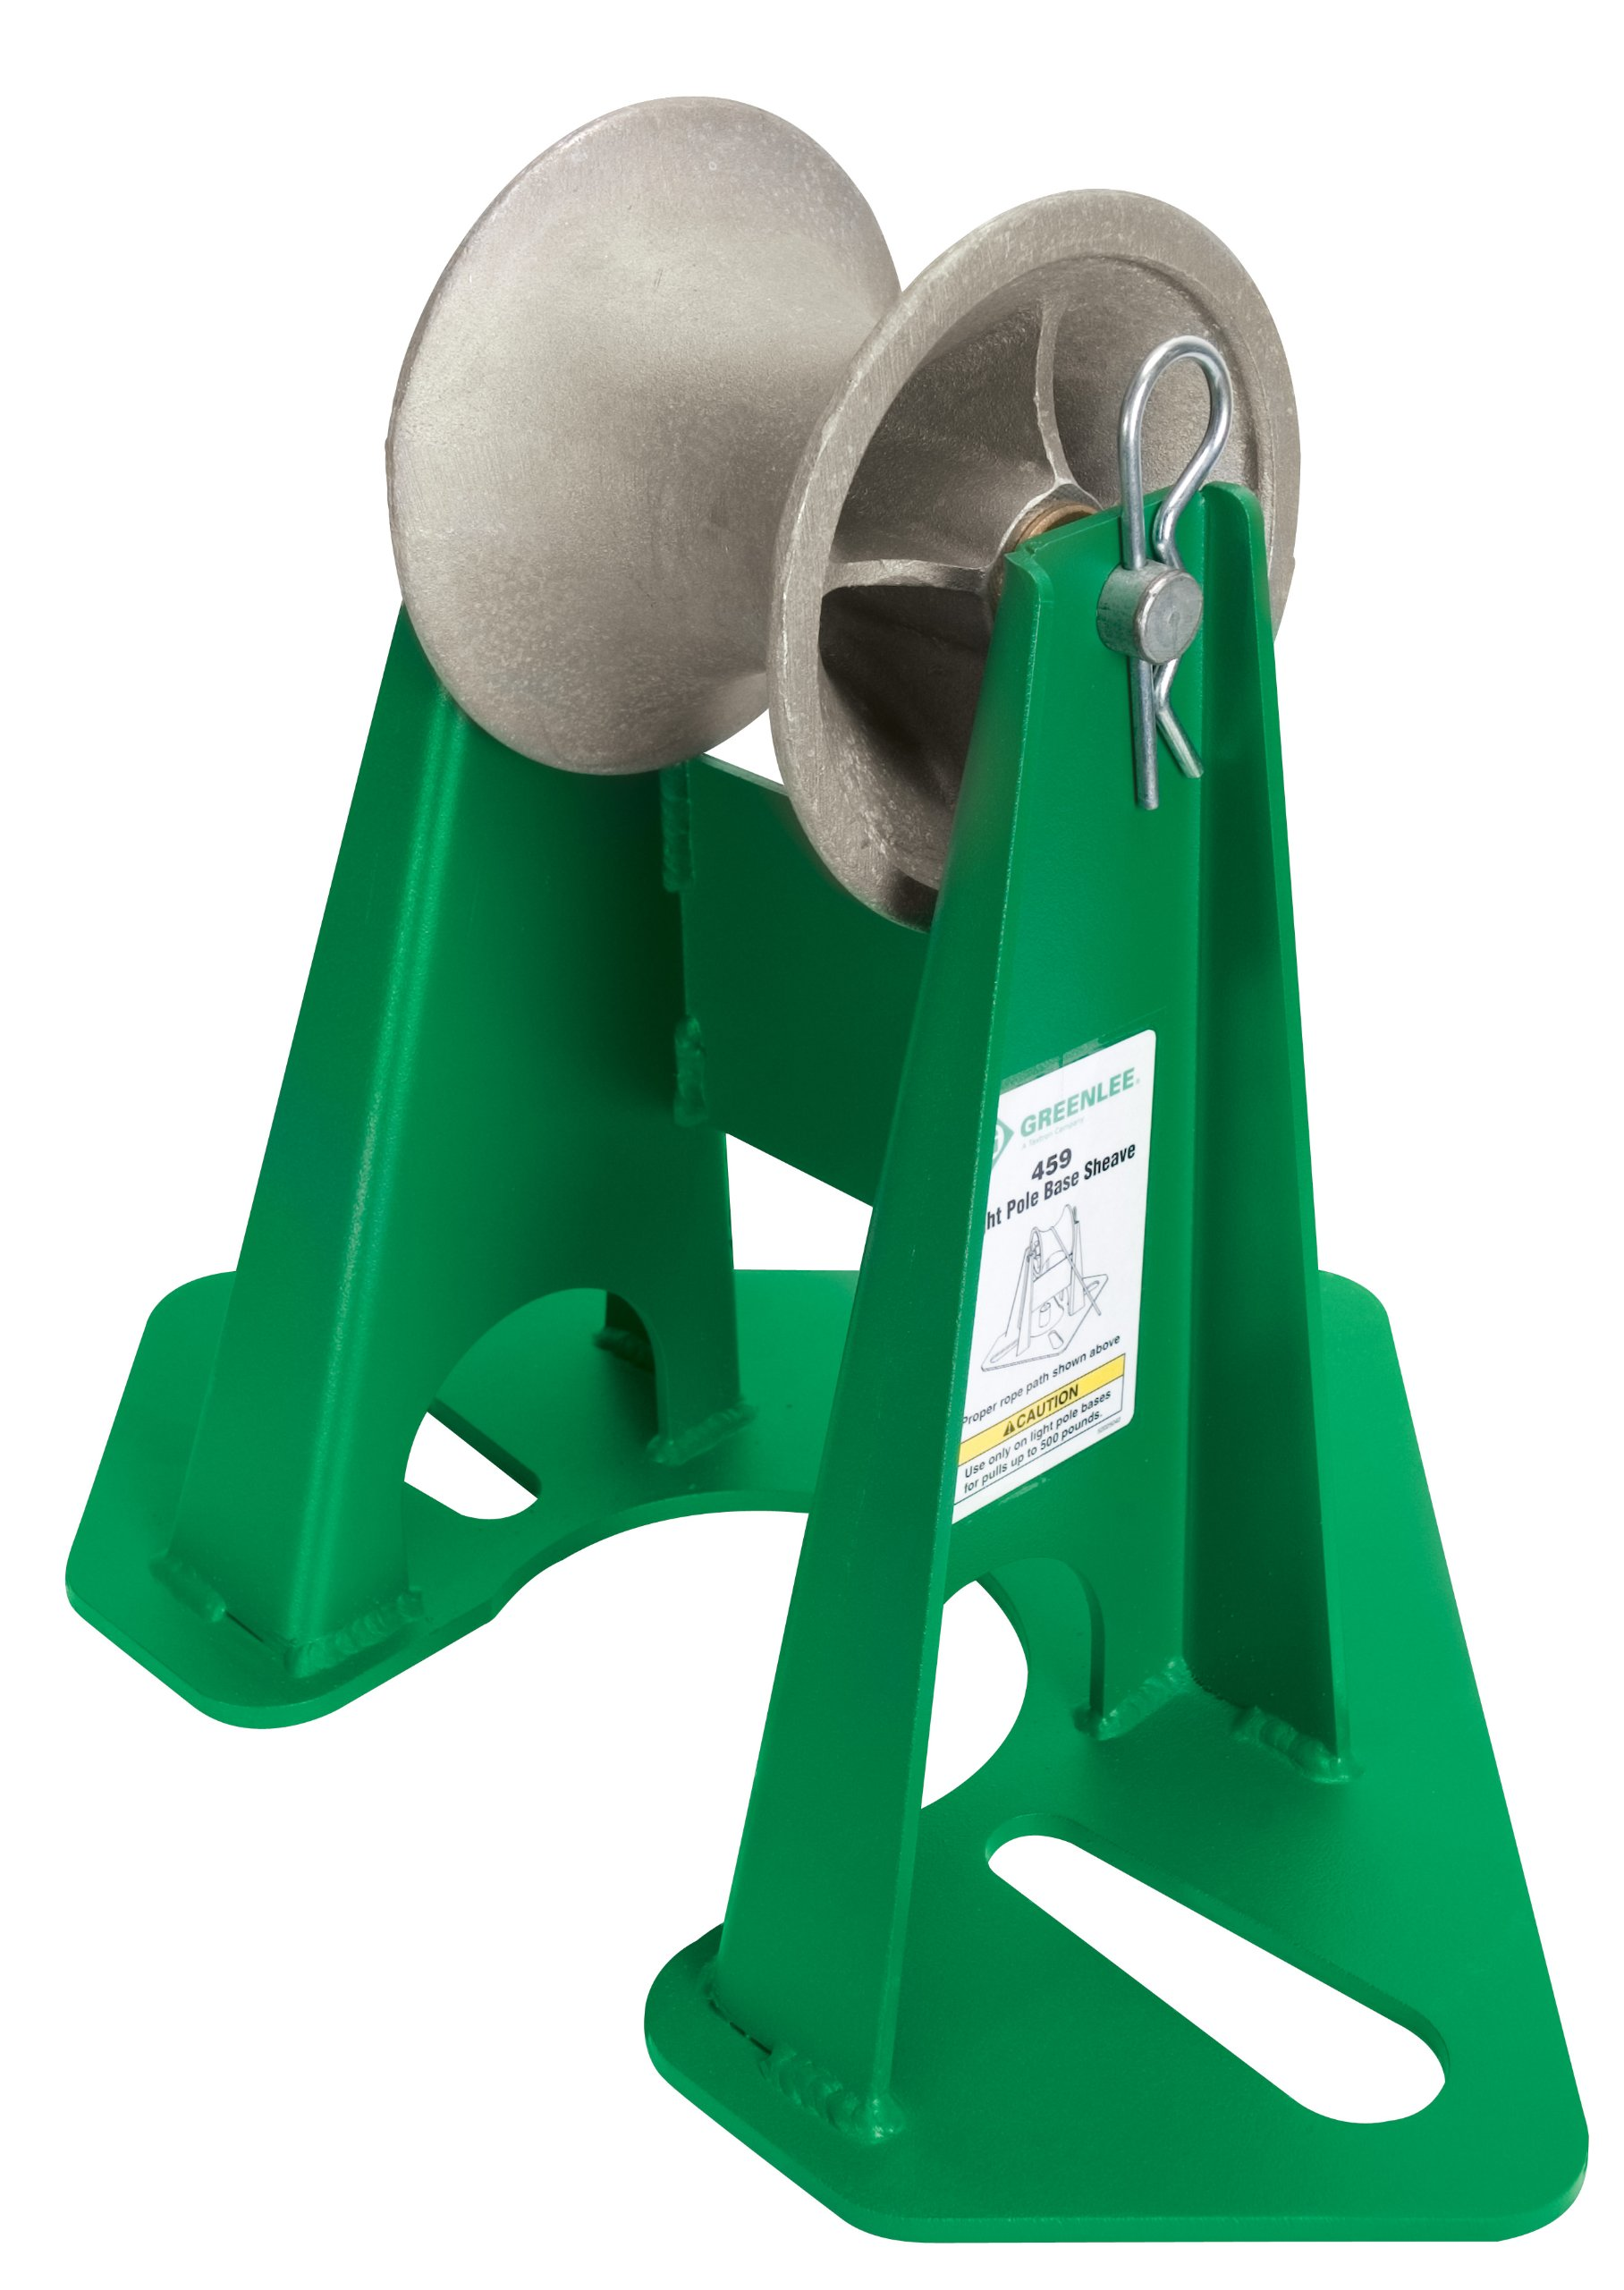 Greenlee 459 Light Base Sheave